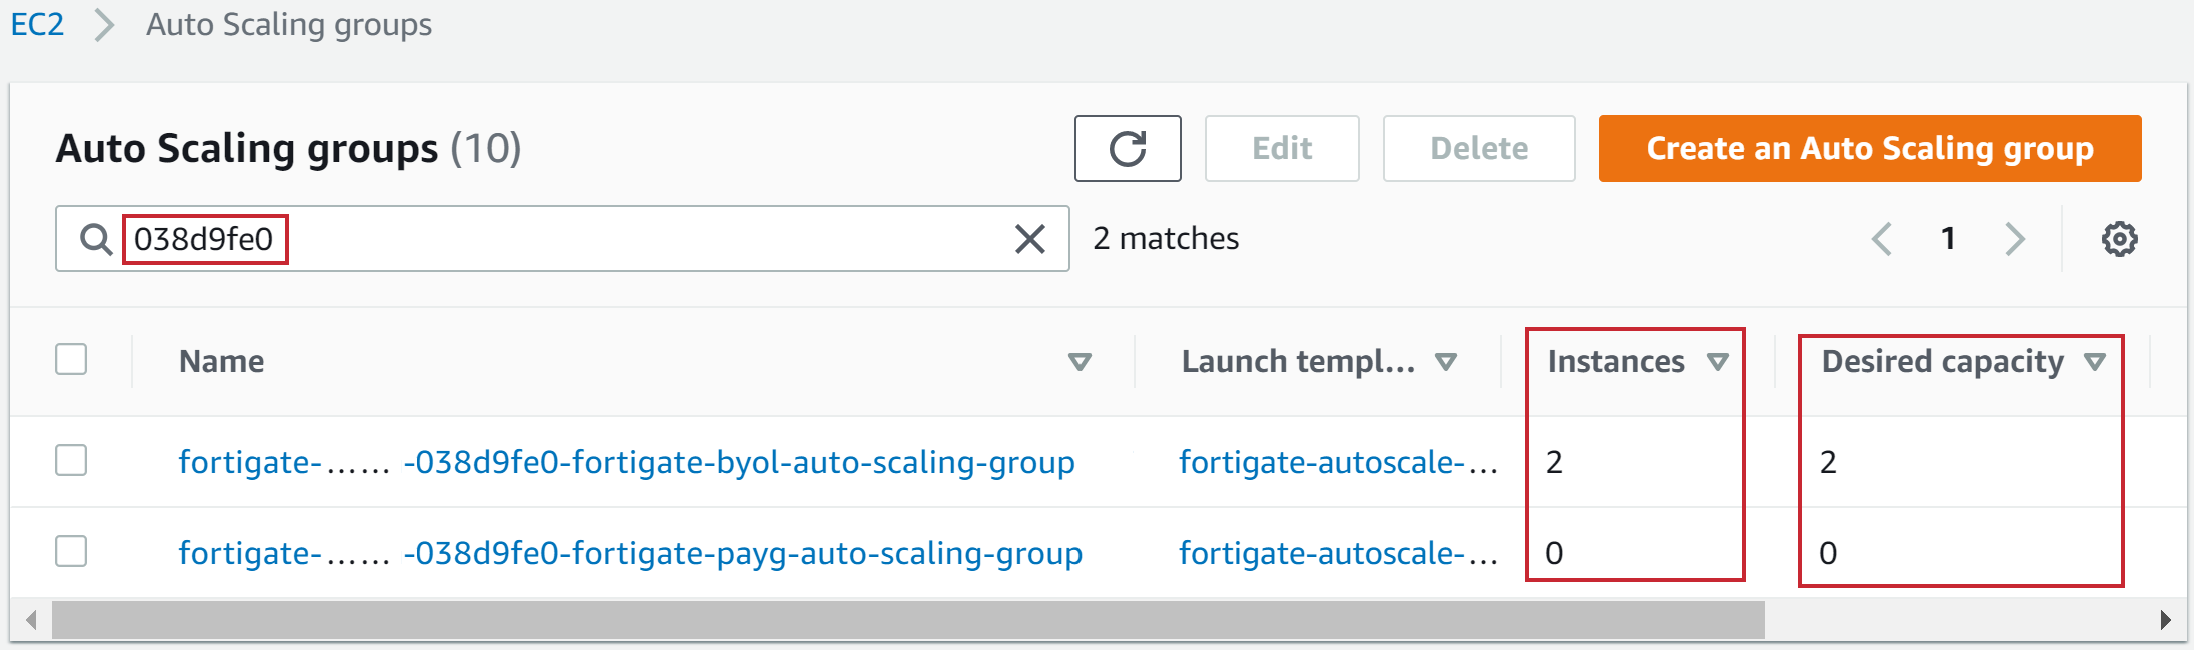 Auto Scaling group